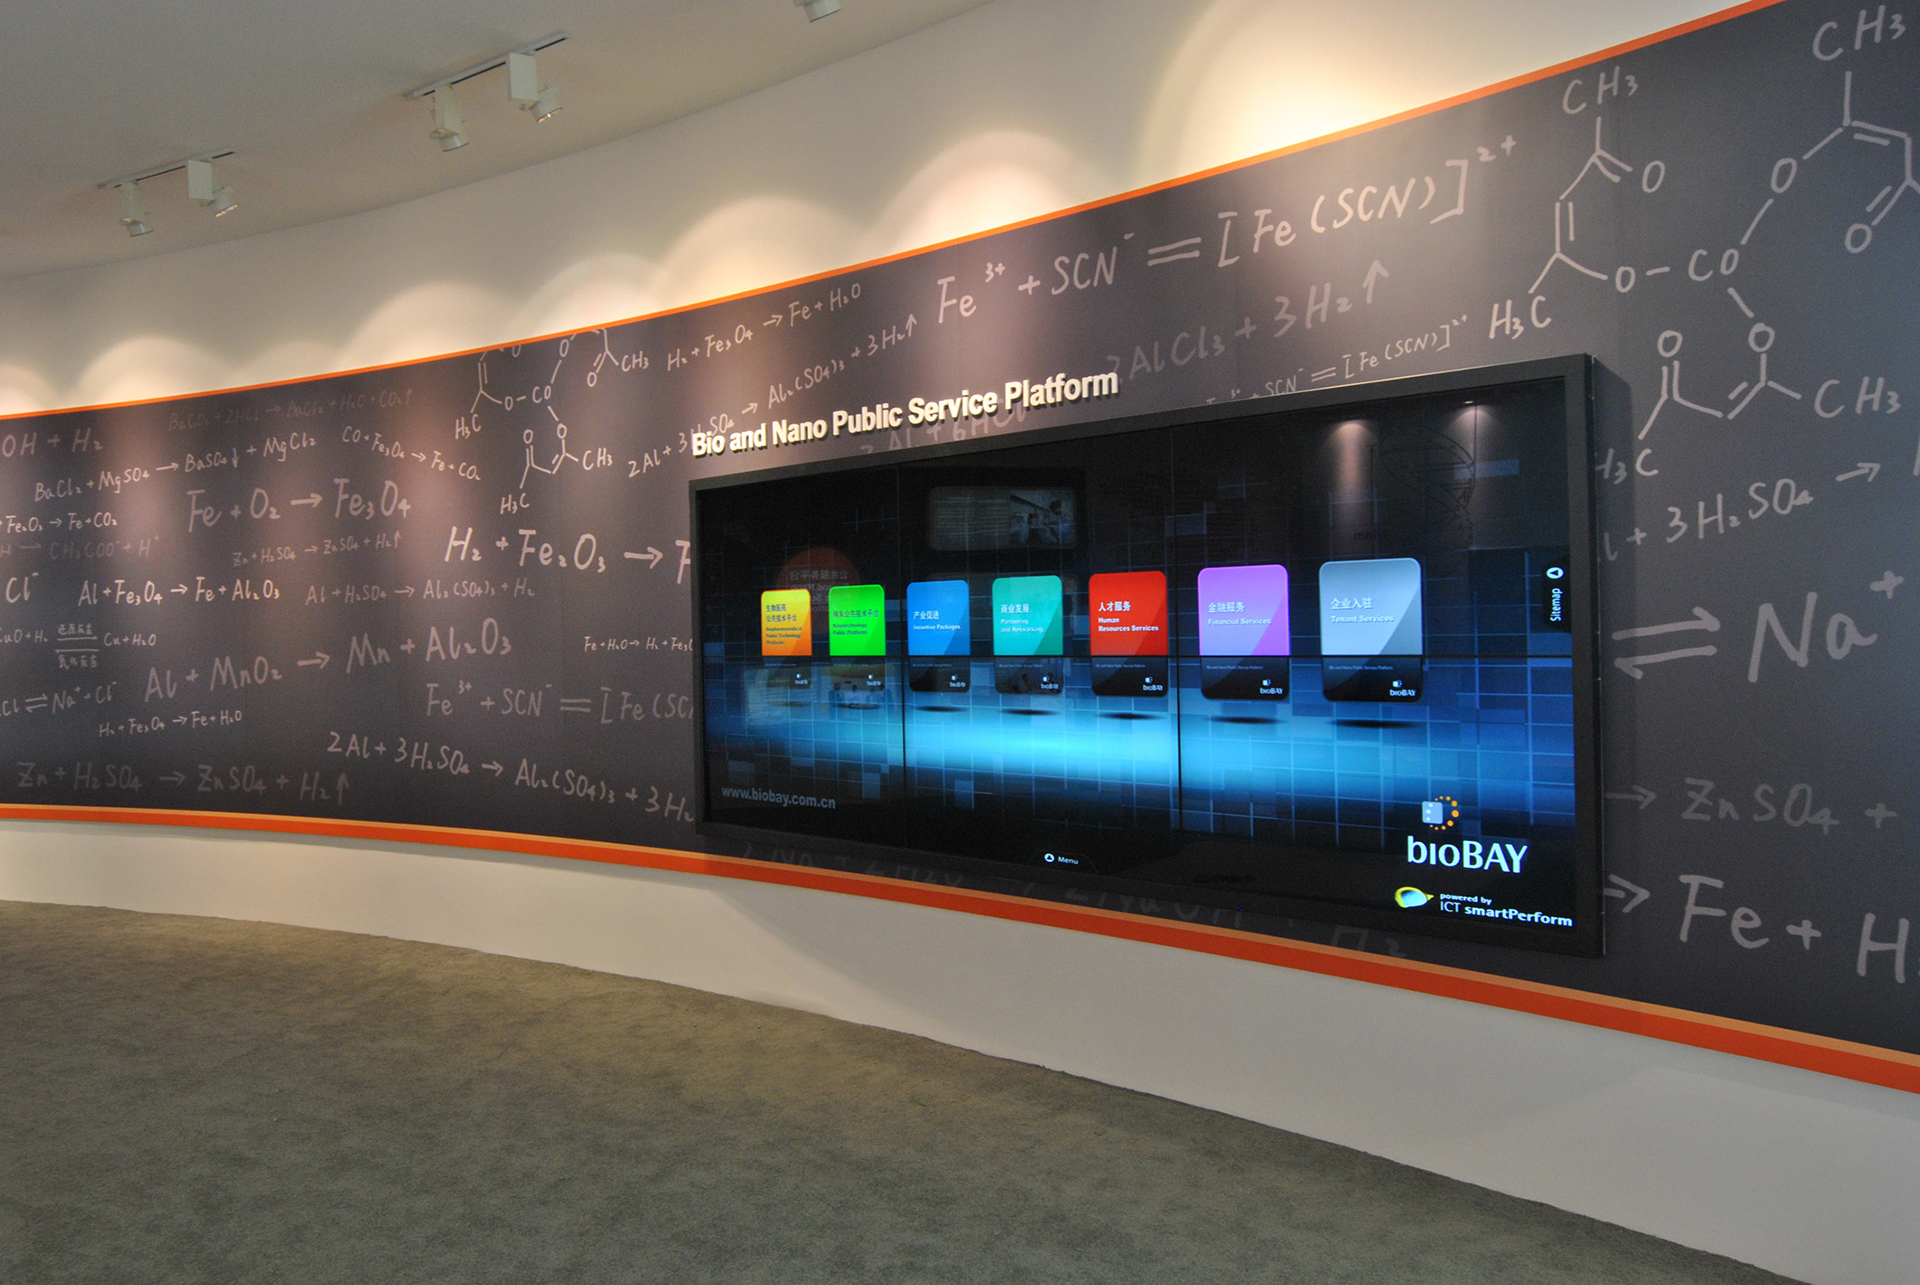 In the back of the showroom, visitors can access a power wall with touch frames, information on the personnel structure, product policy, the development of bioBAY as well as the latest news. smartPerform ensures the optimal presentation of the content in the unconventional wide-screen format.